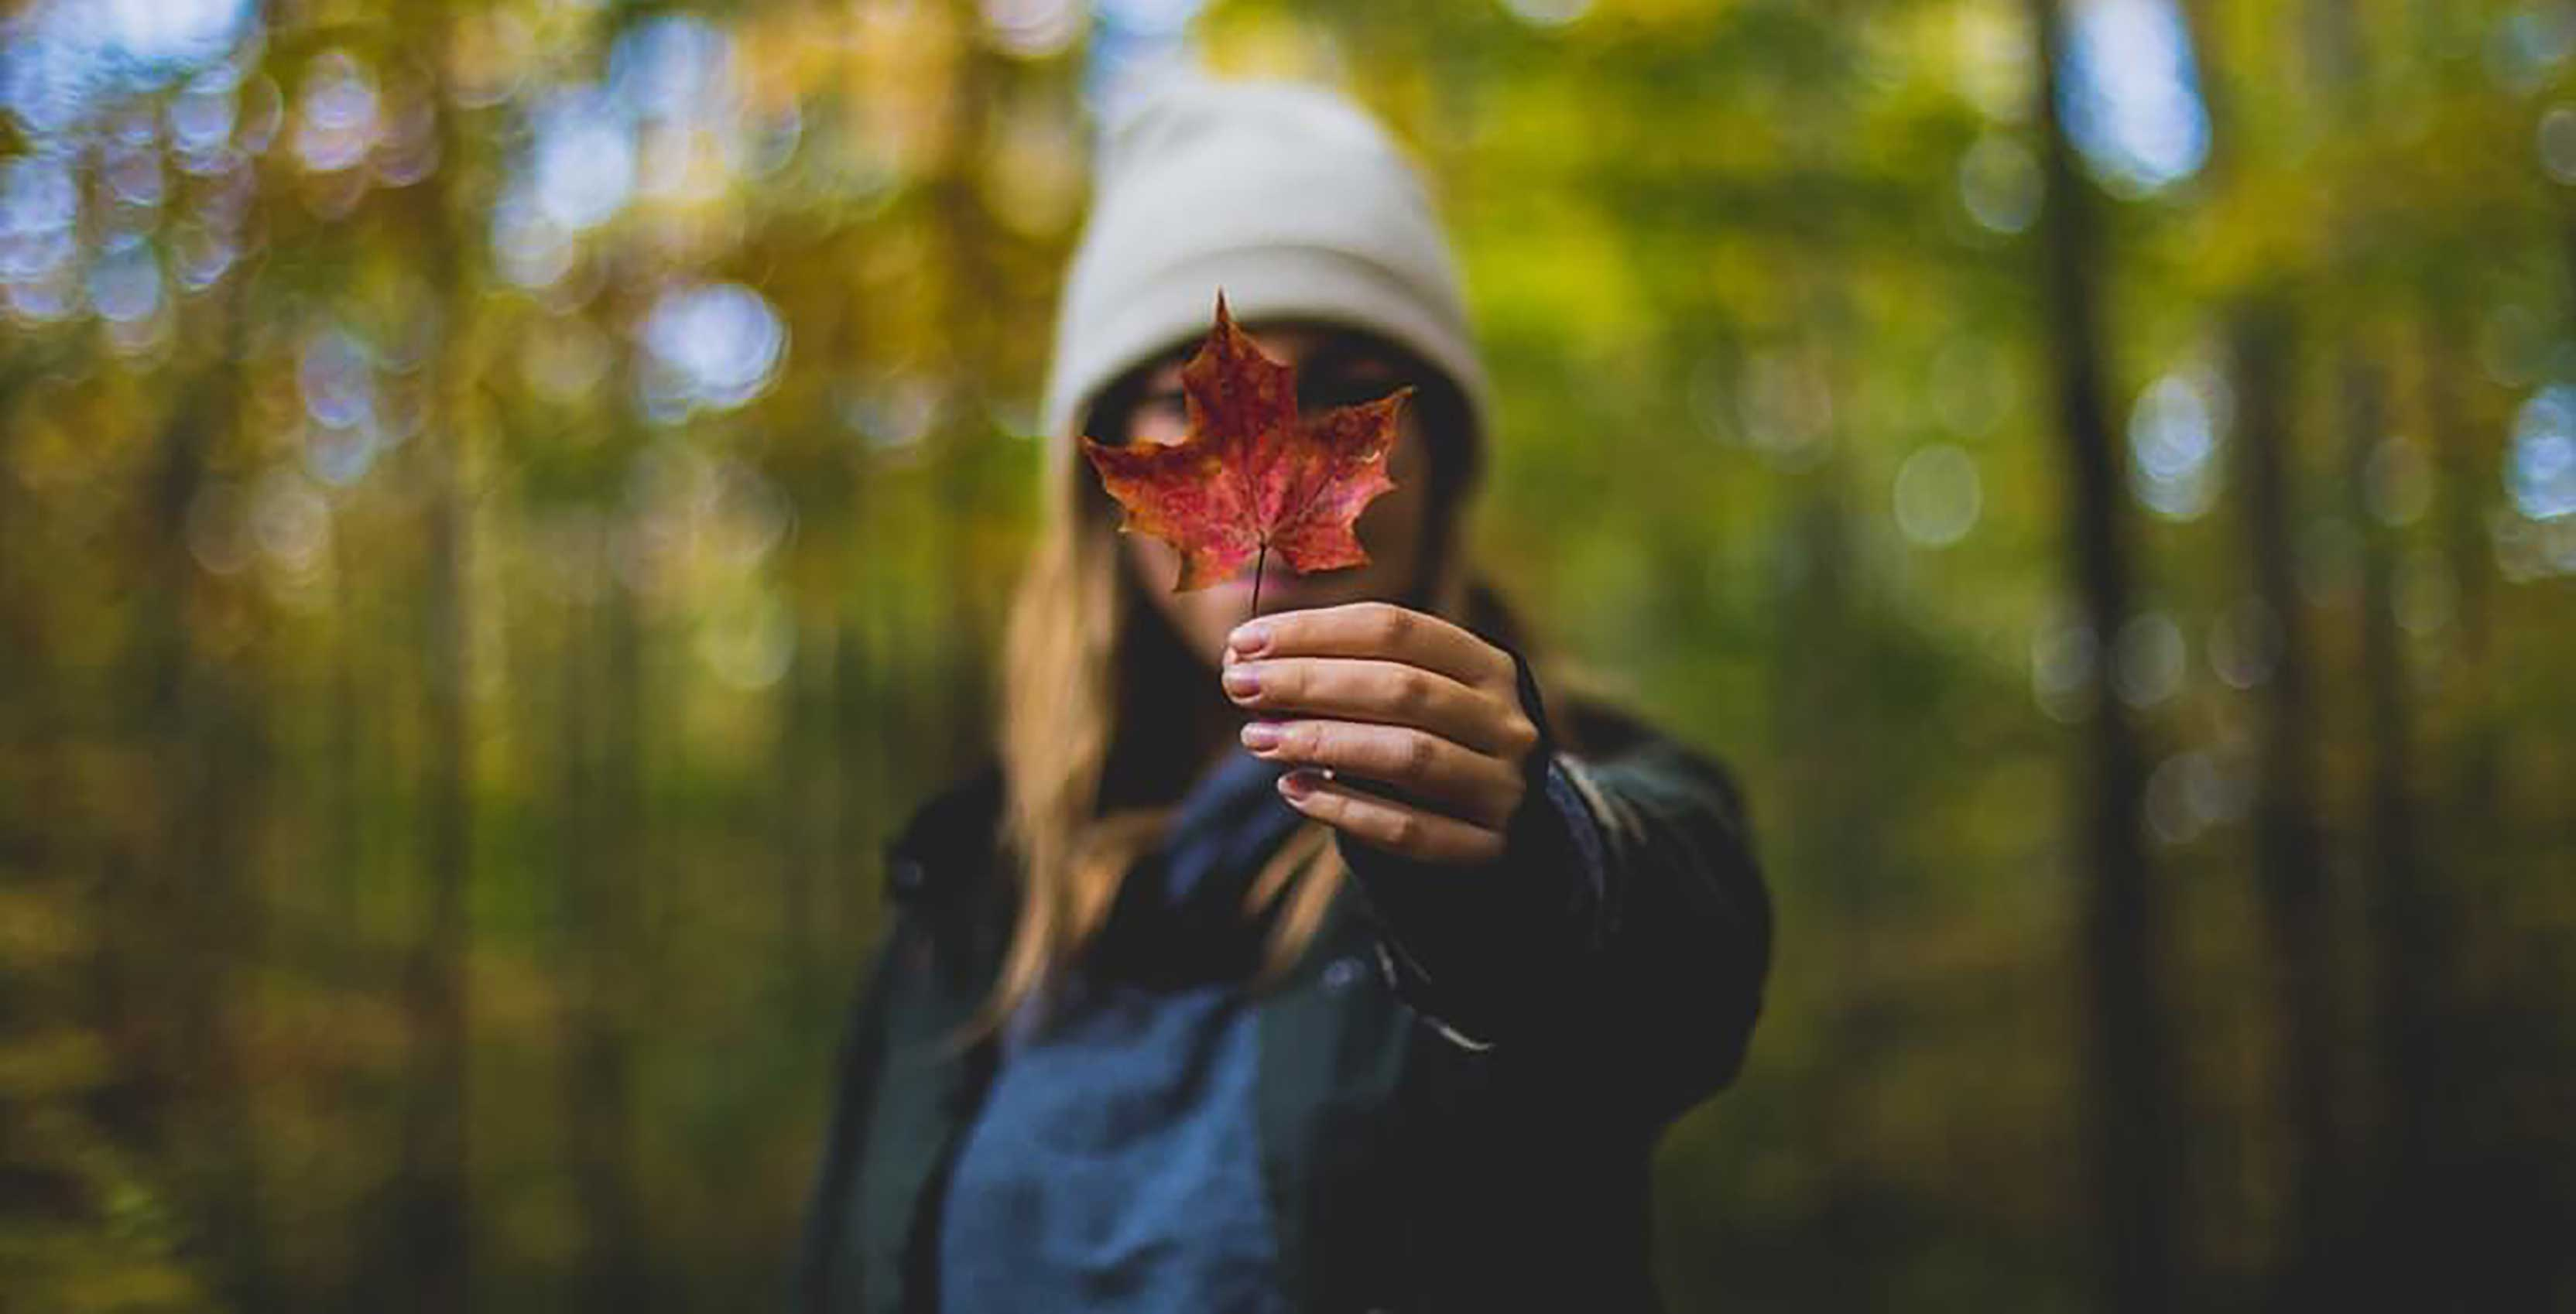 Maple leaf in hand